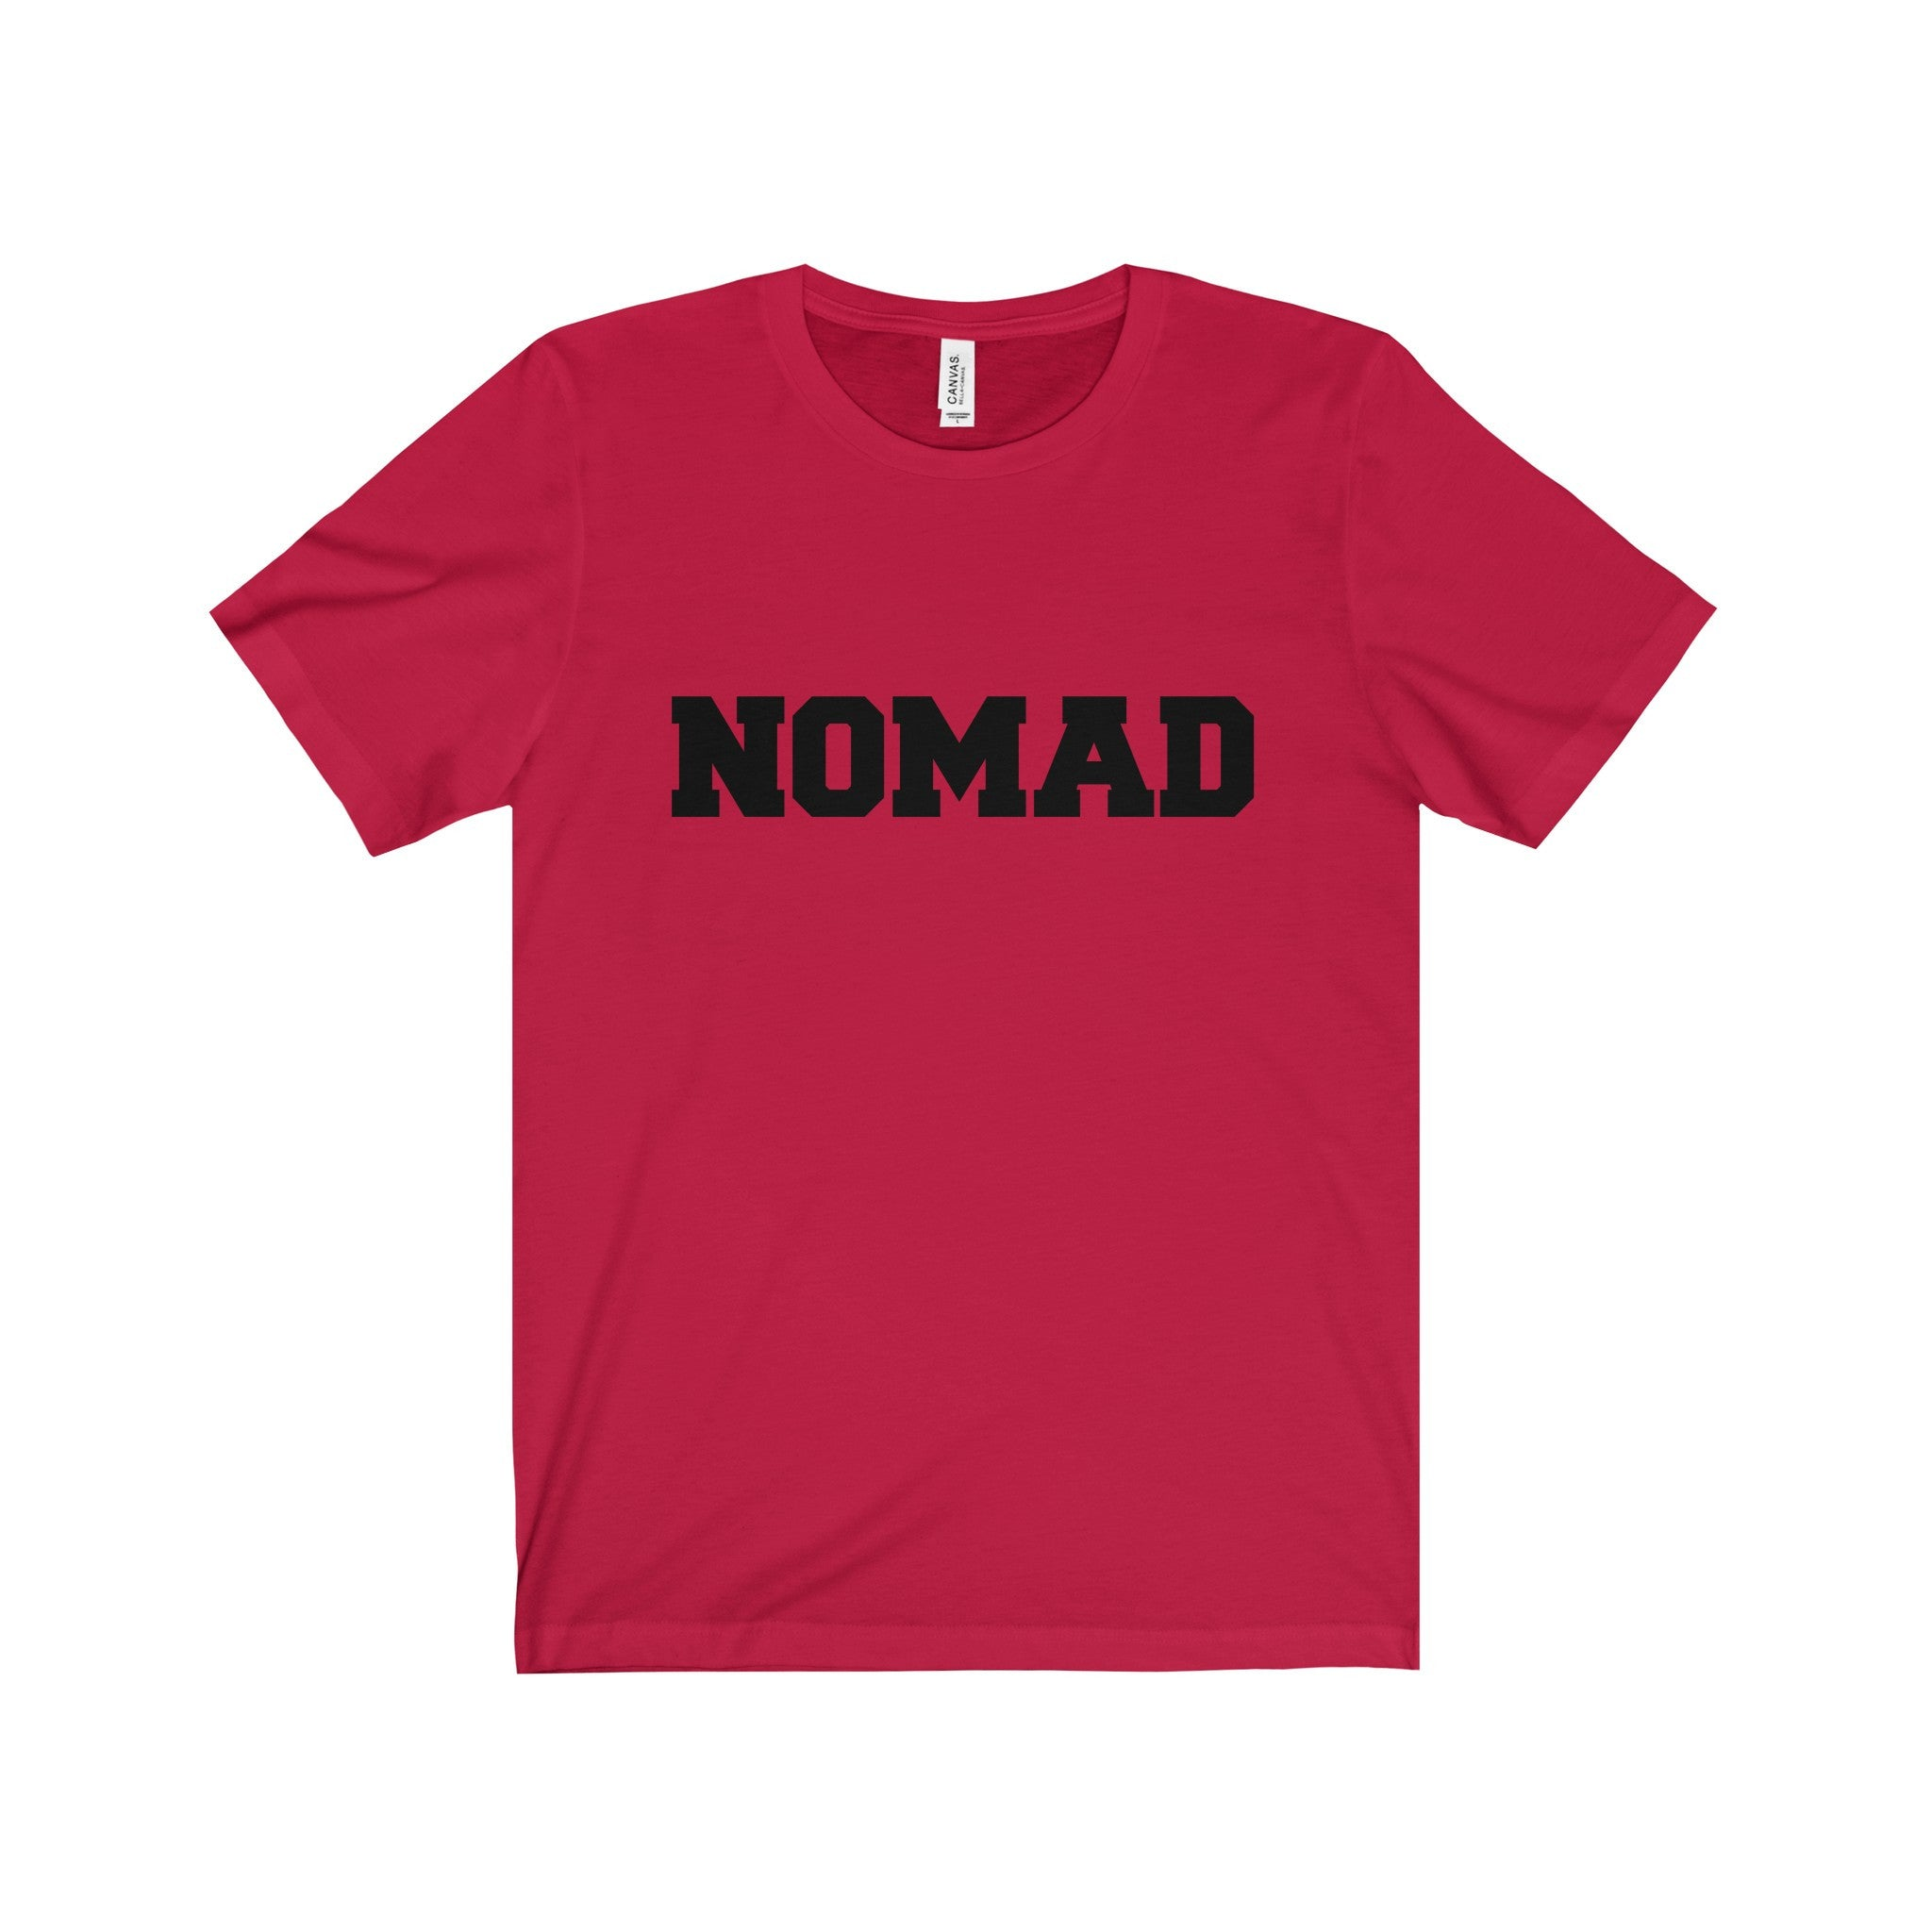 NOMAD Black Letter Tee (5 colors available)